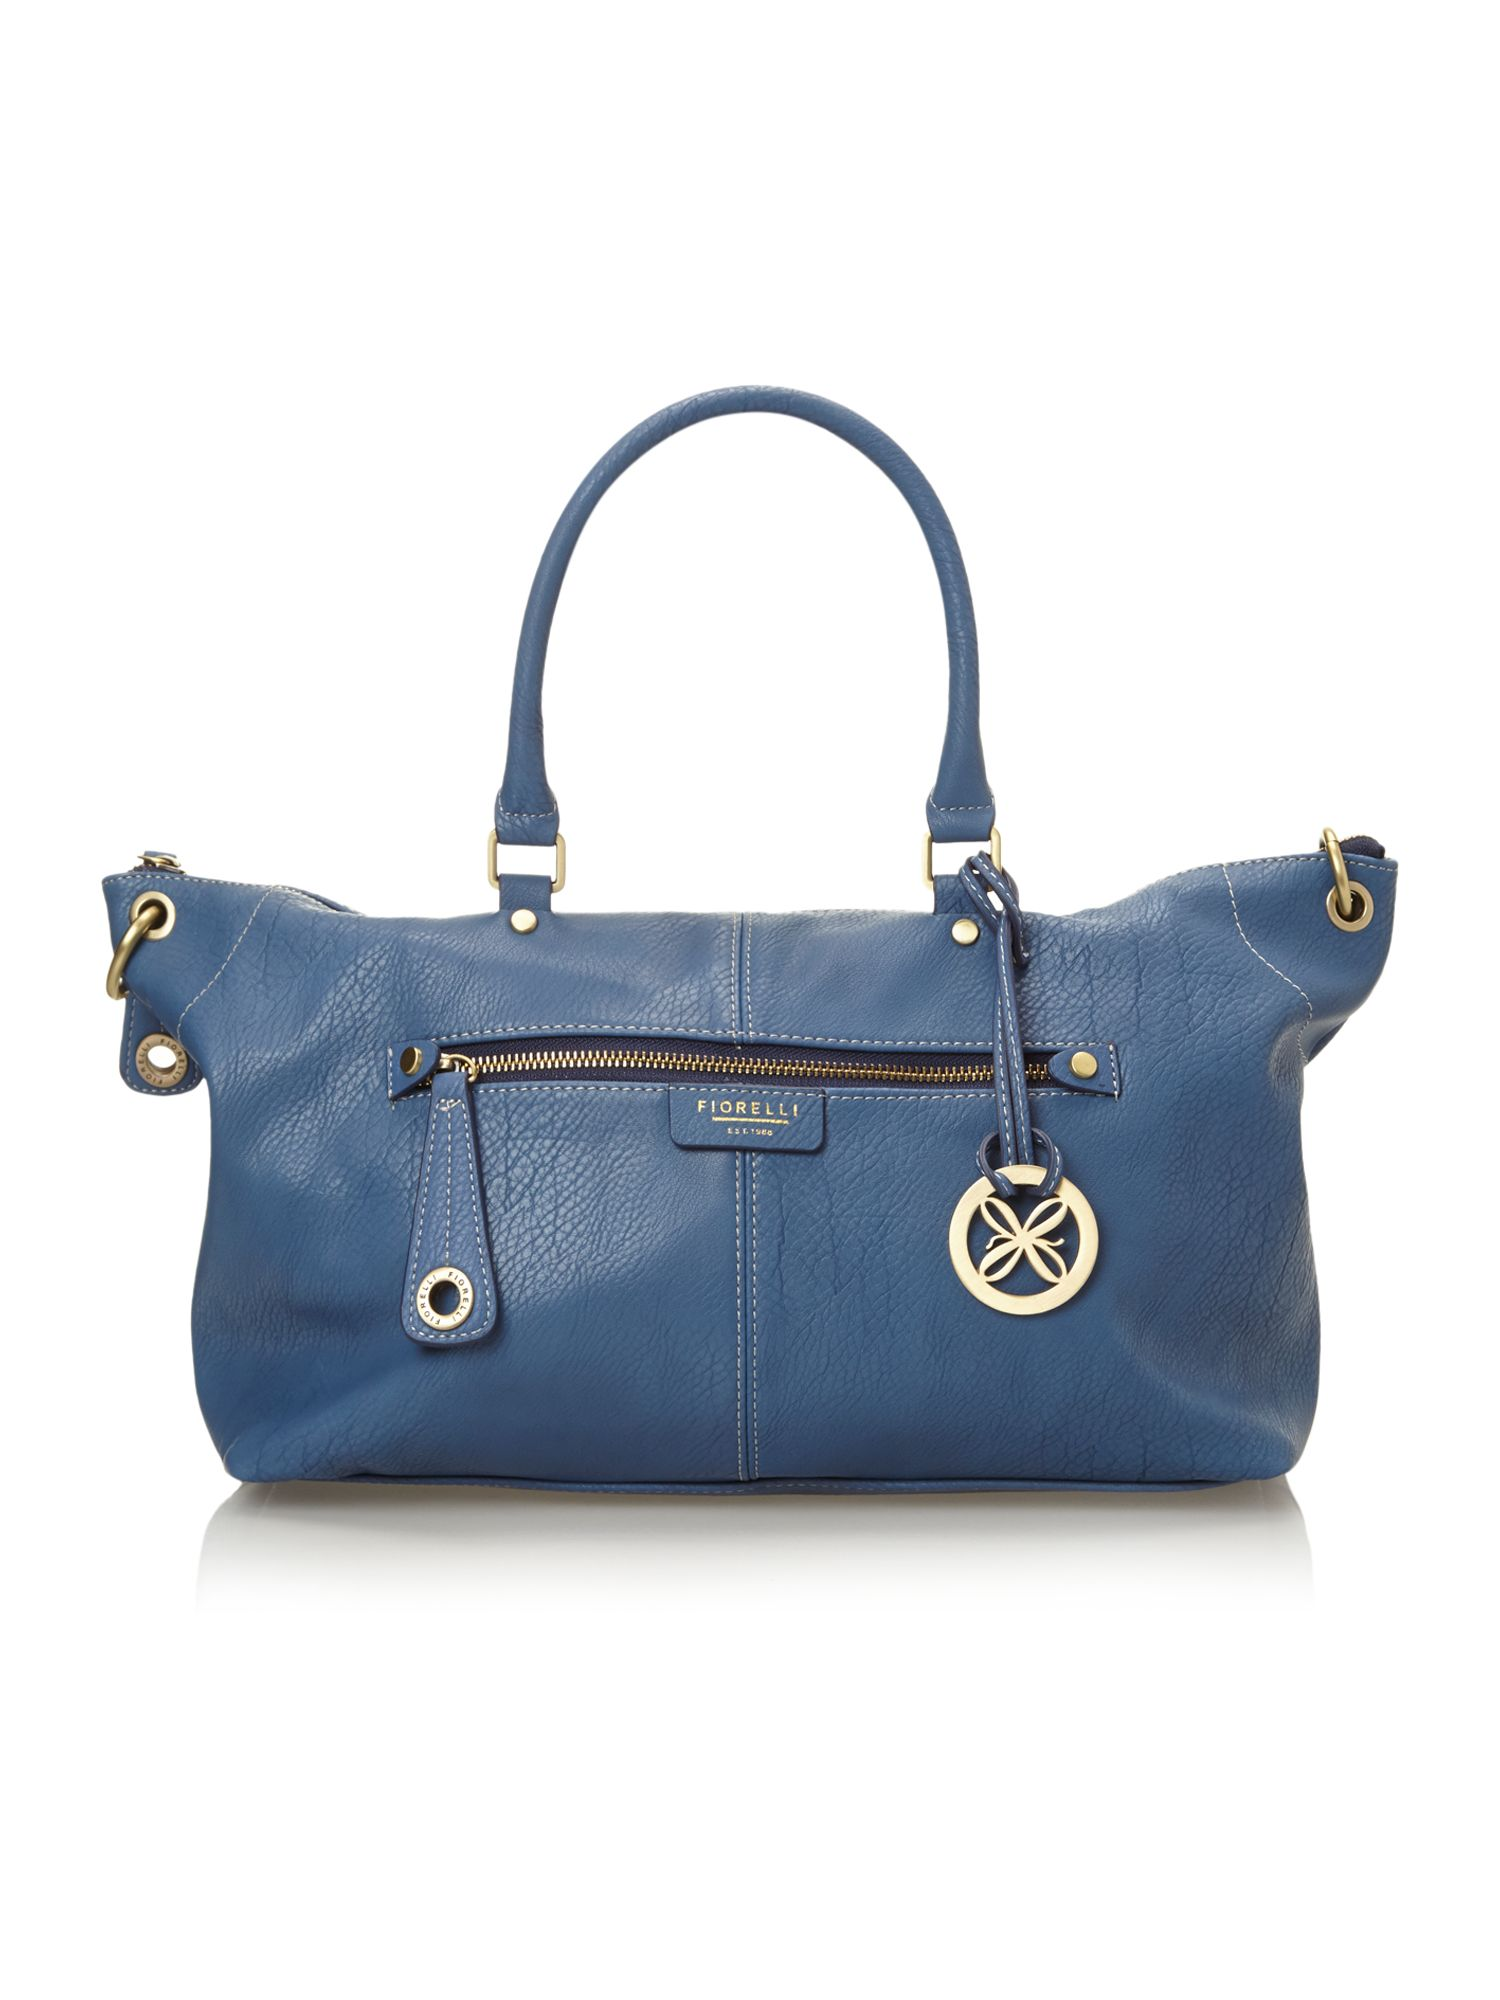 Amelia blue tote bag